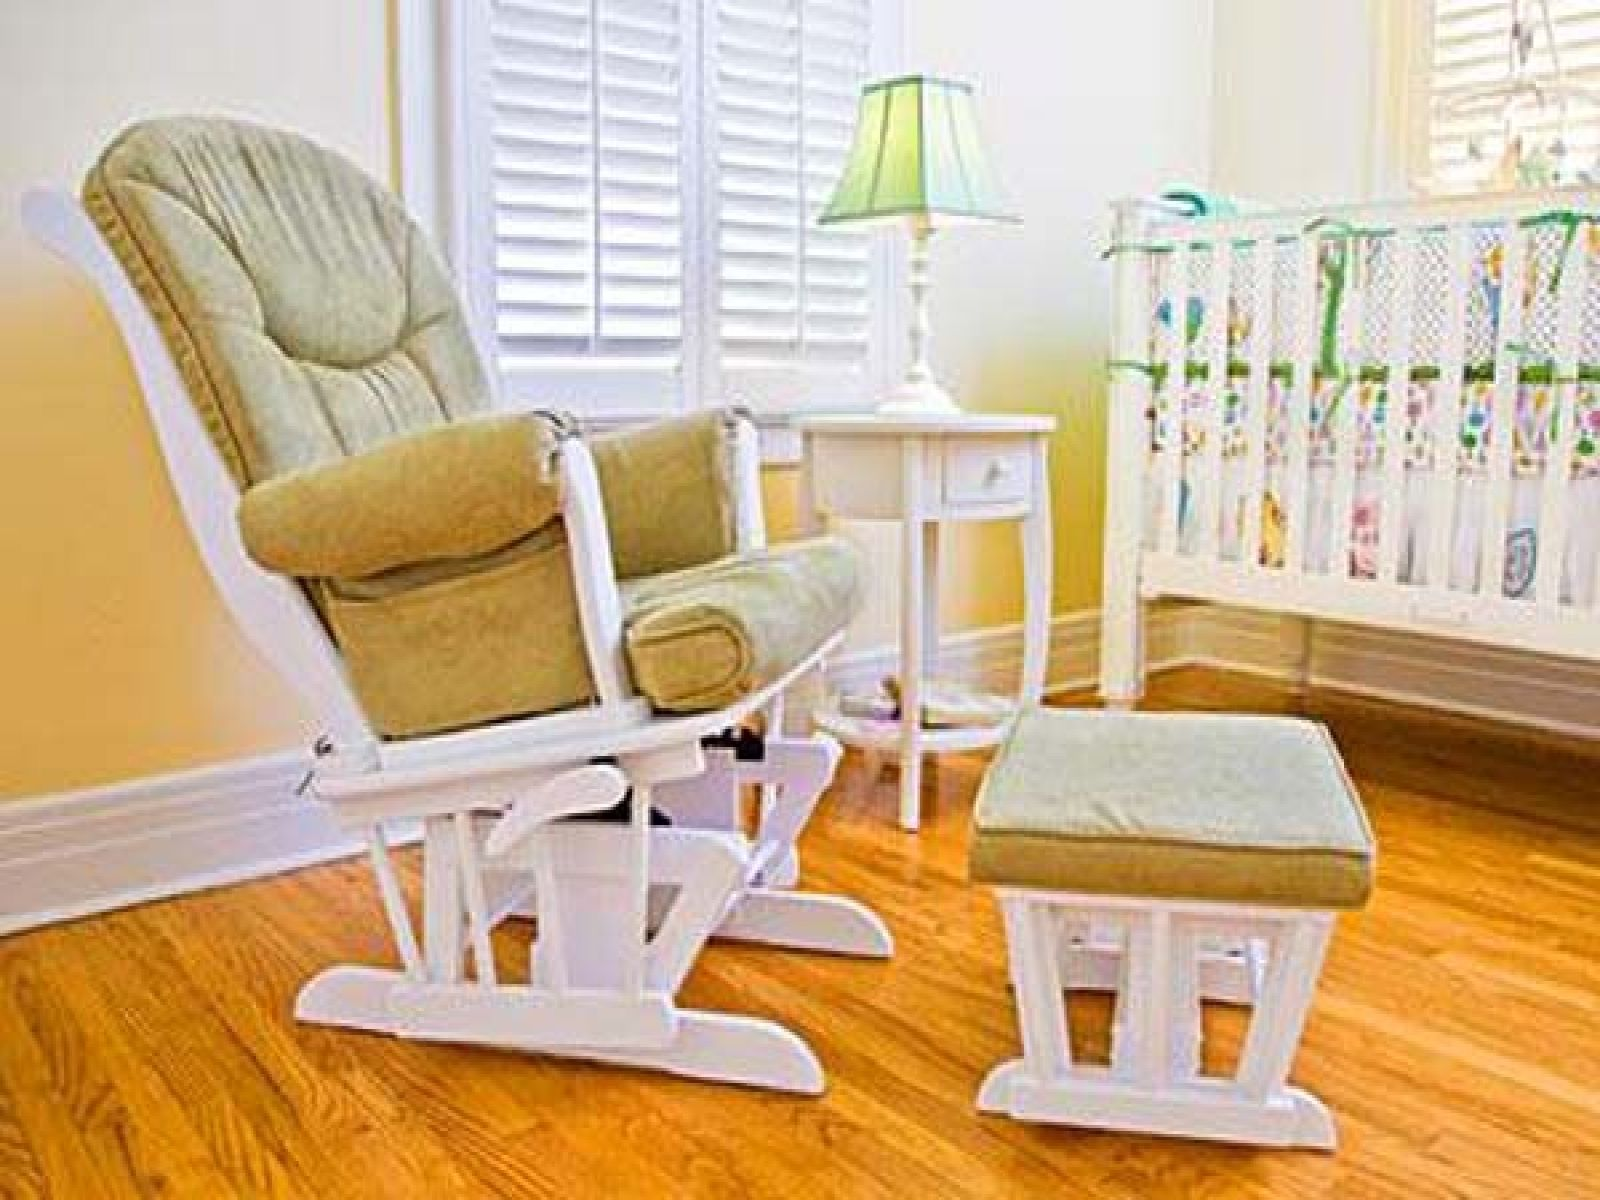 Best Glider Rocking Chair for Nursery - //.kimweather.com & Best Glider Rocking Chair for Nursery - http://www.kimweather.com ...